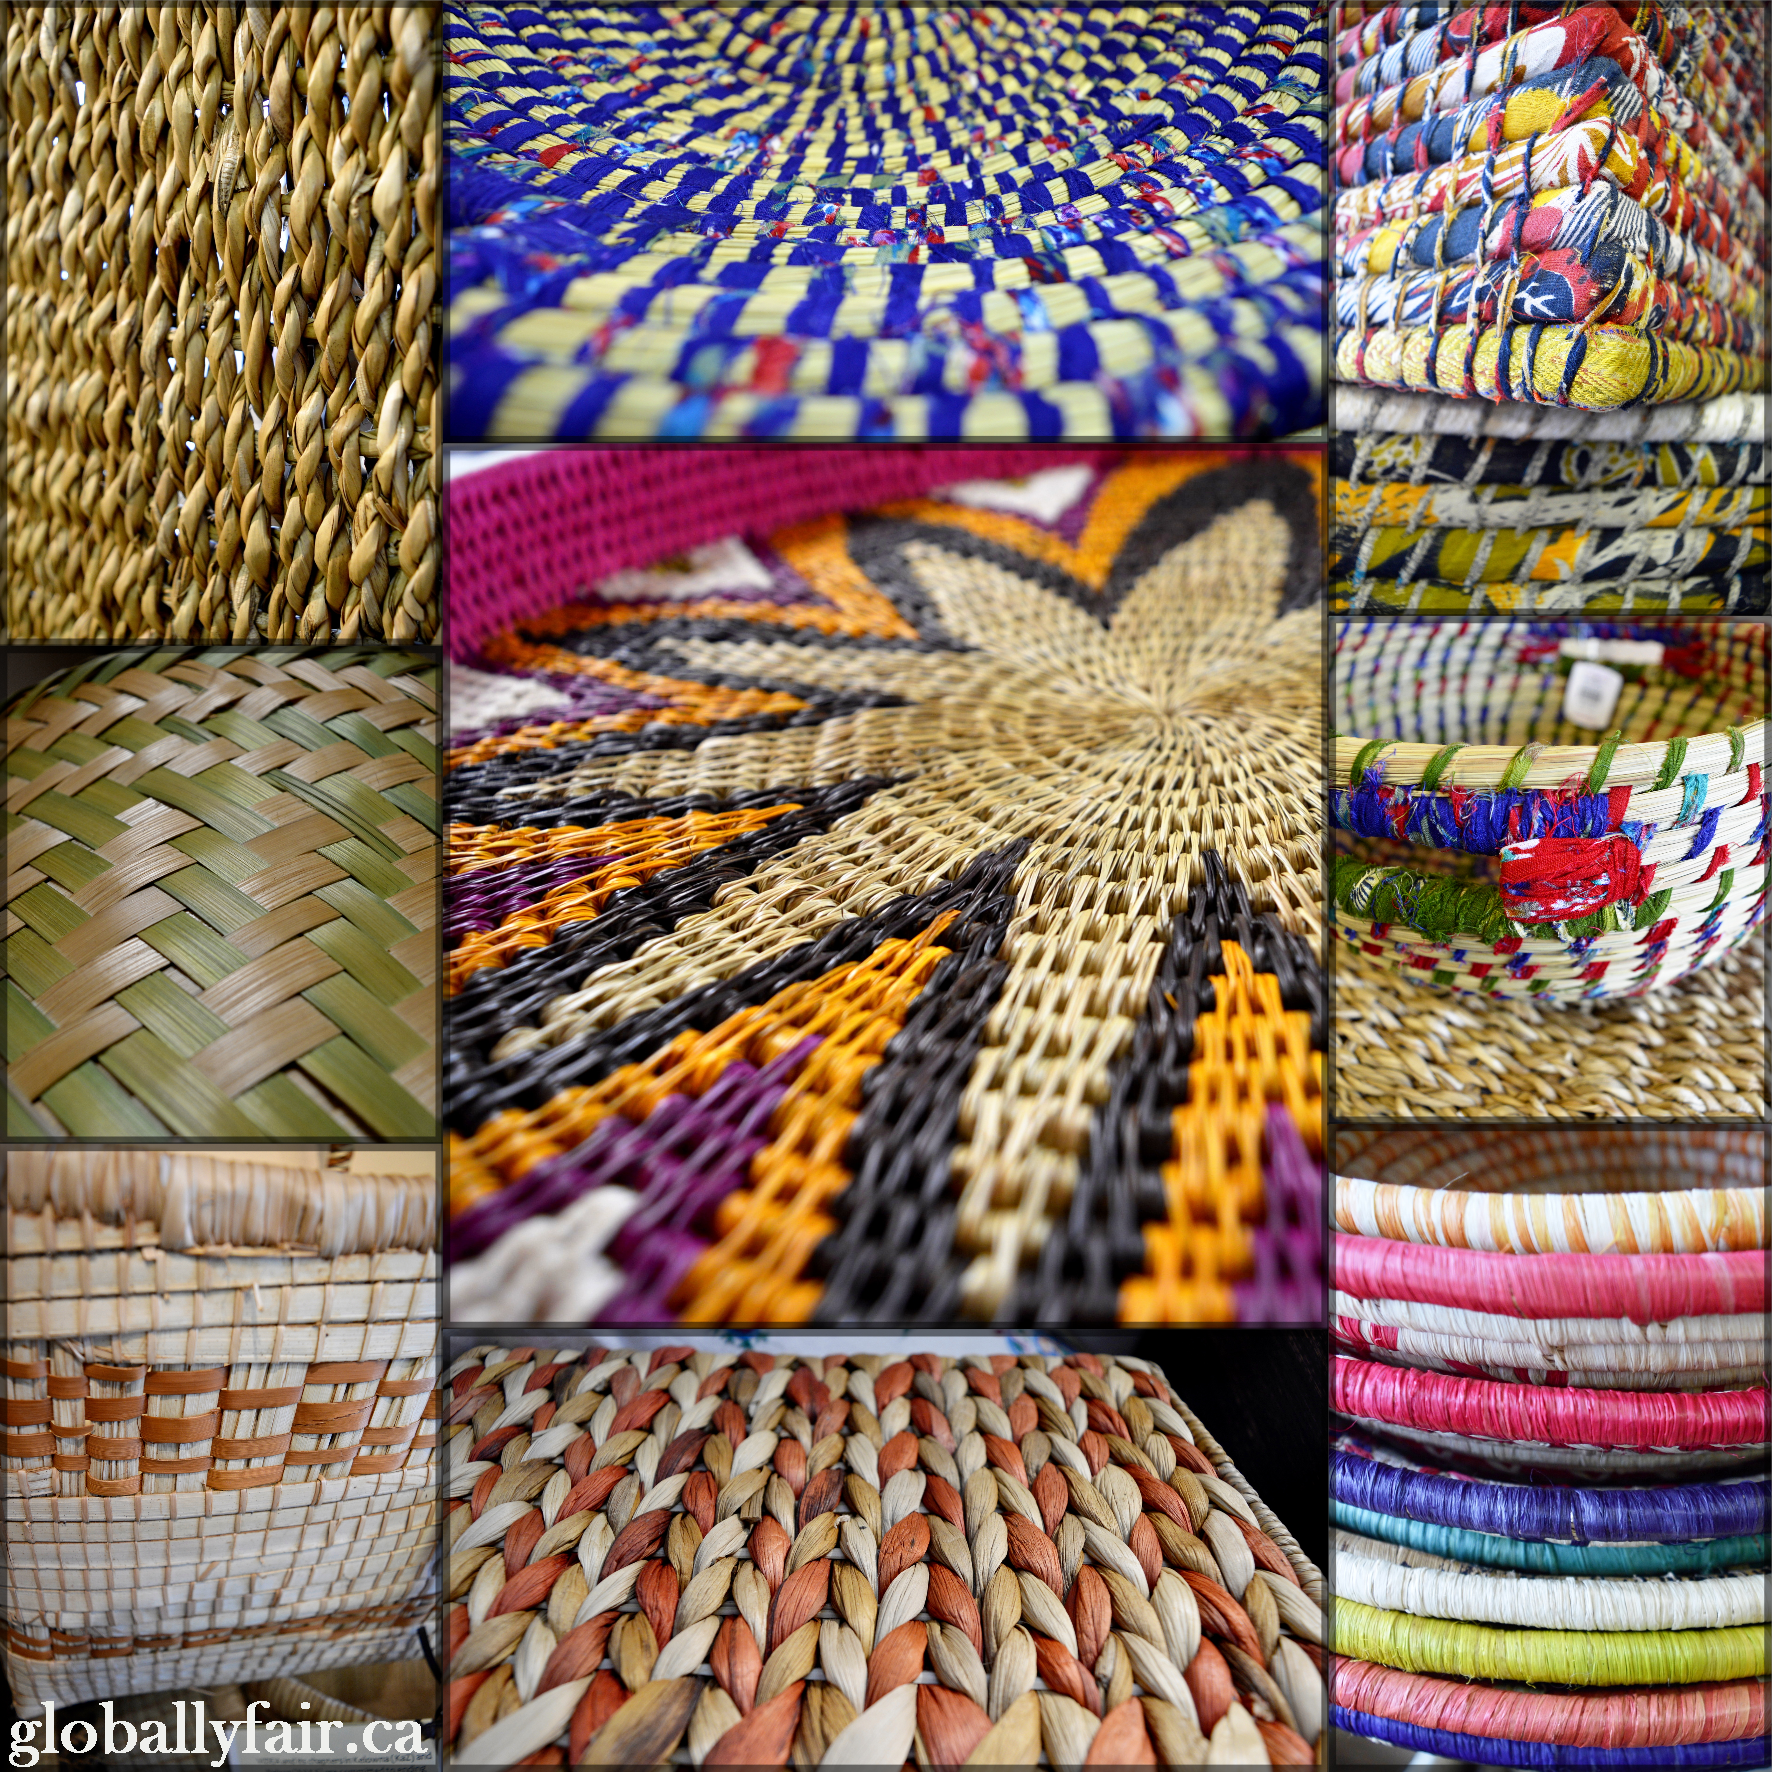 We have #baskets in every #shape, #size & #colour from #India, #Bangladesh, #Laos, #Uganda & #Zambia! #fairtrade #handmade